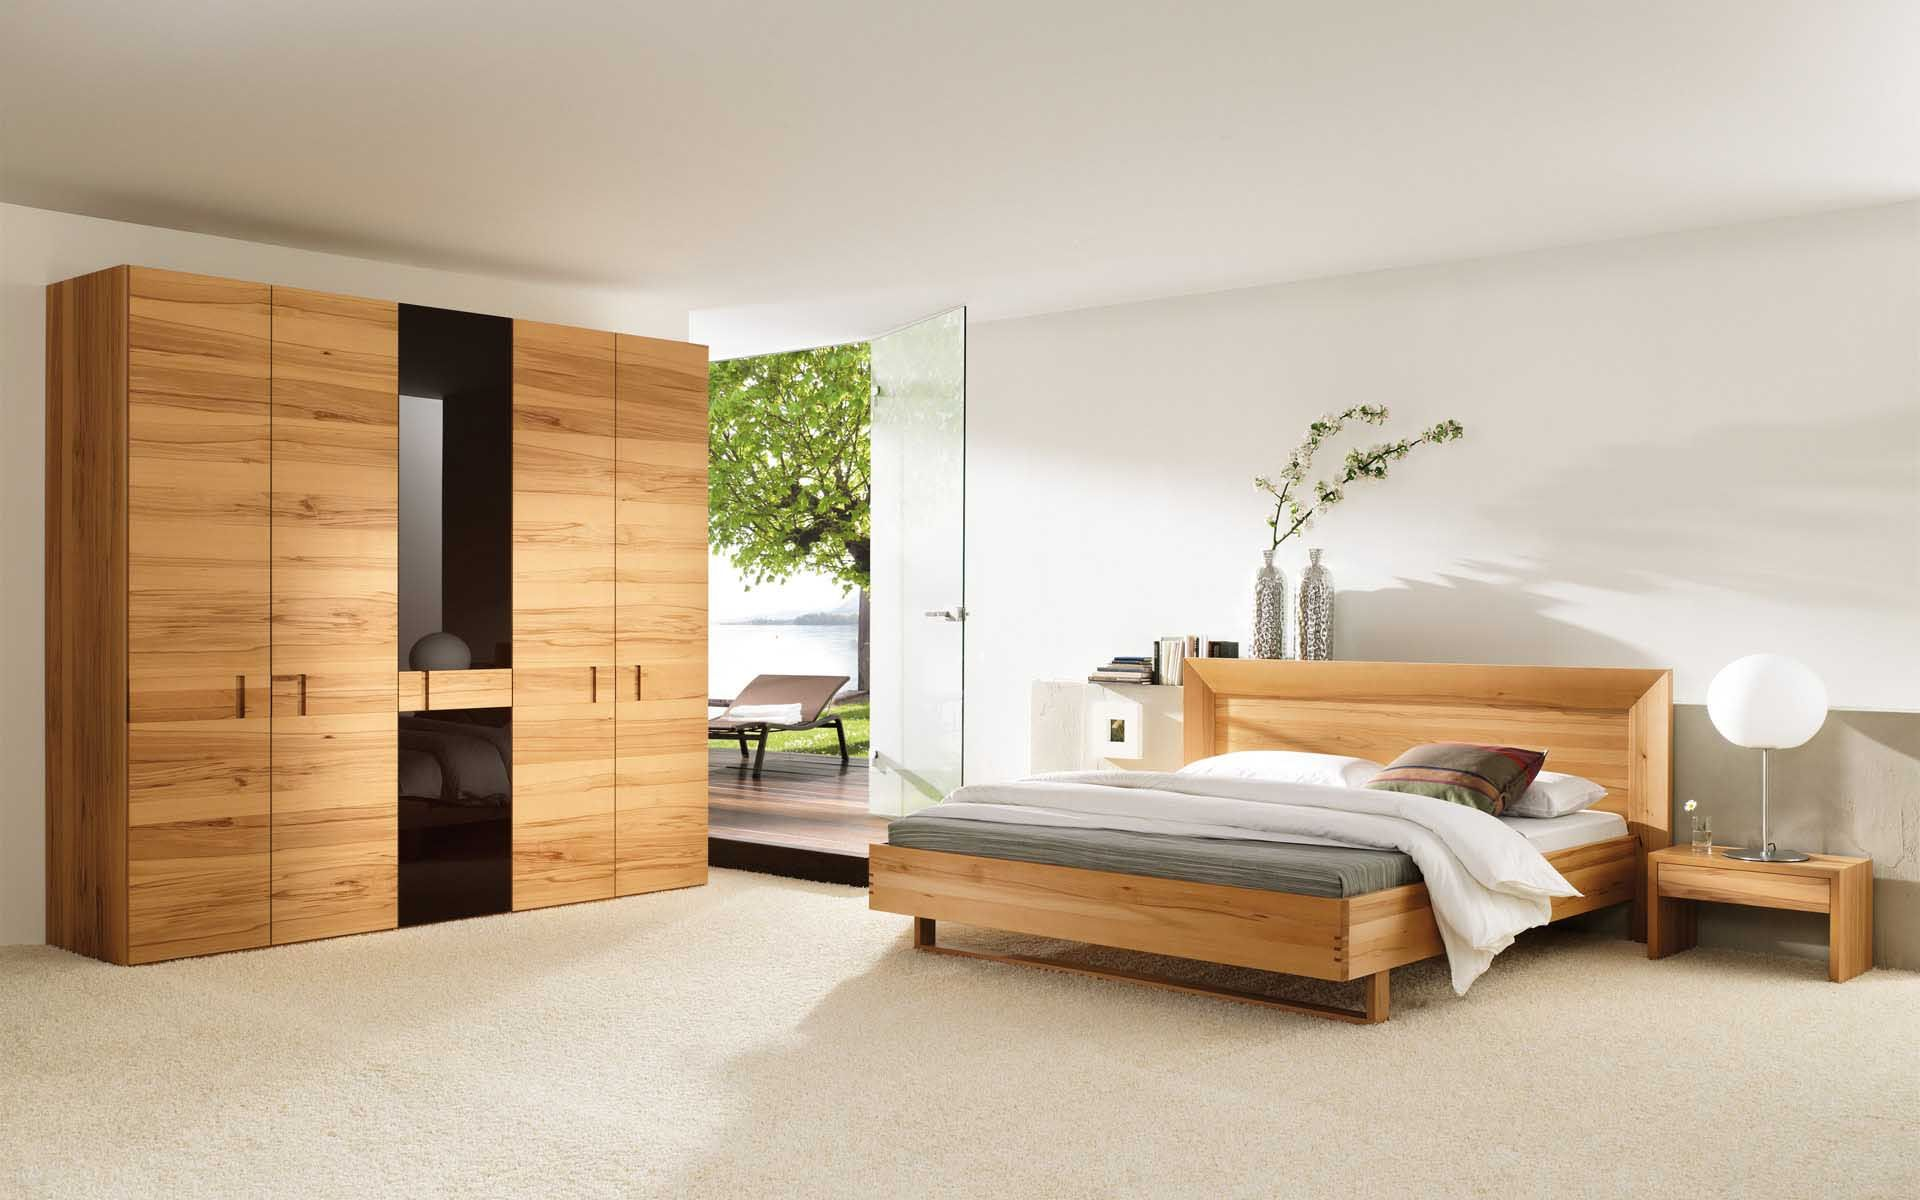 light-wood-bedroom-furniture-neutral-colors-light-wood-bedroom